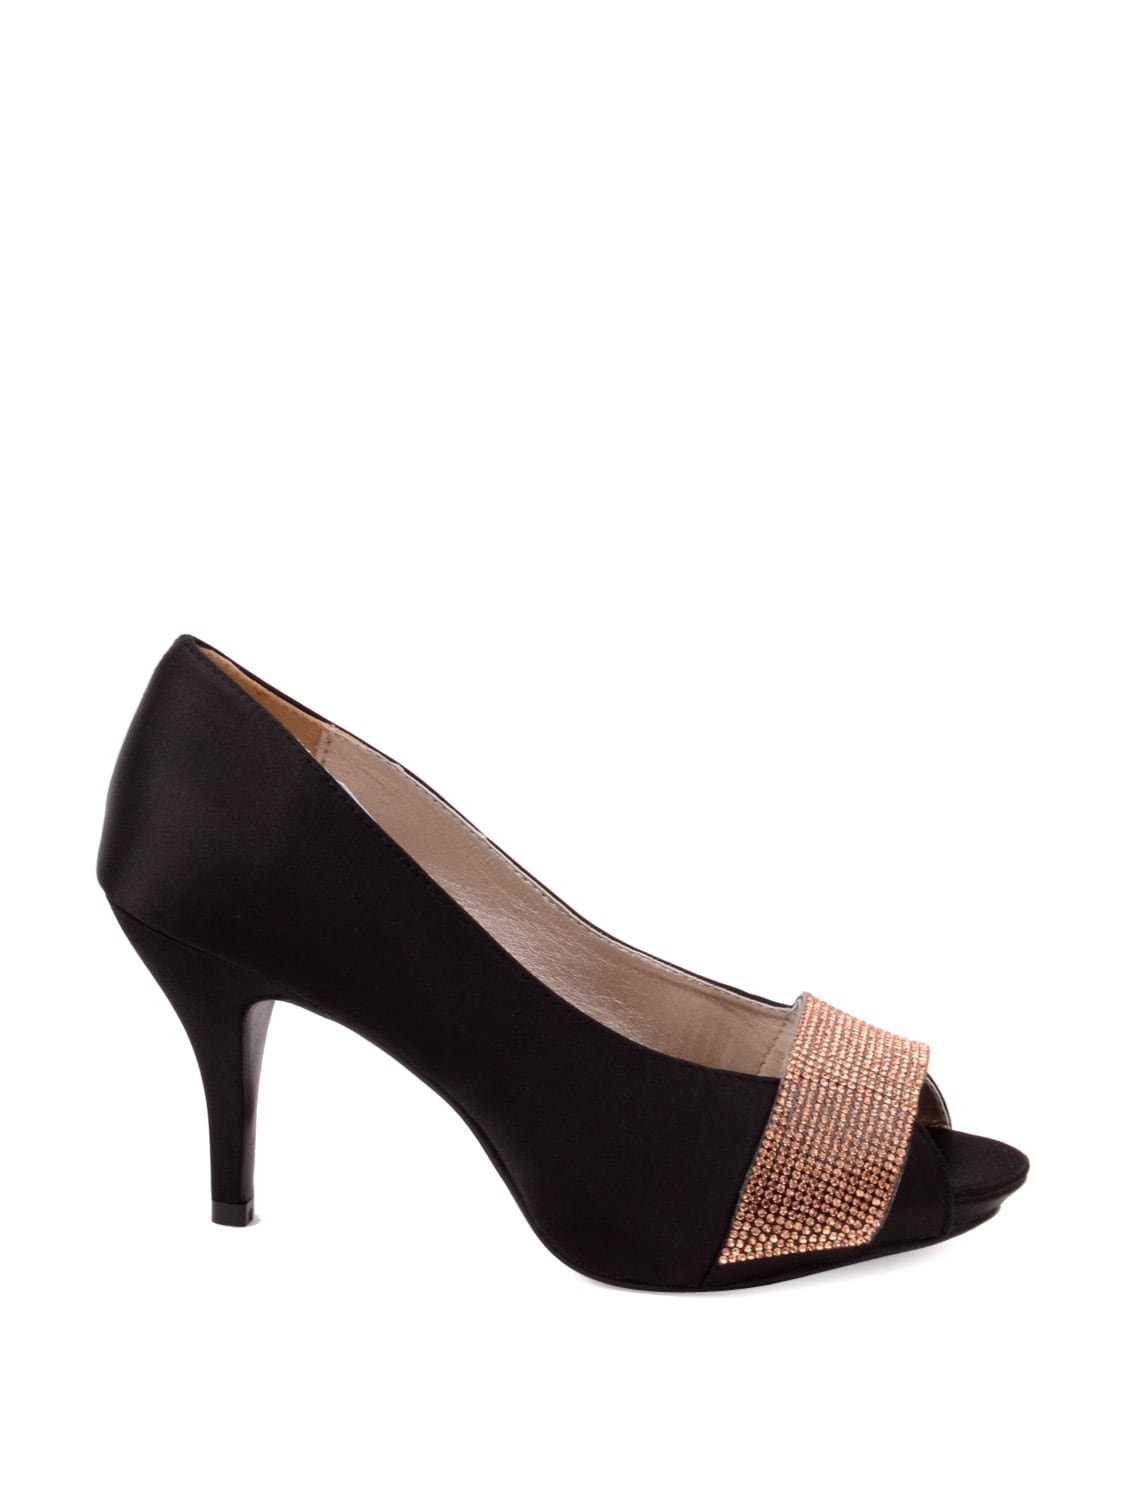 63b9c54bb8 Buy Elegant Black Peep Toes for Women from Carlton London for ₹3495 at 0%  off | 2019 Limeroad.com